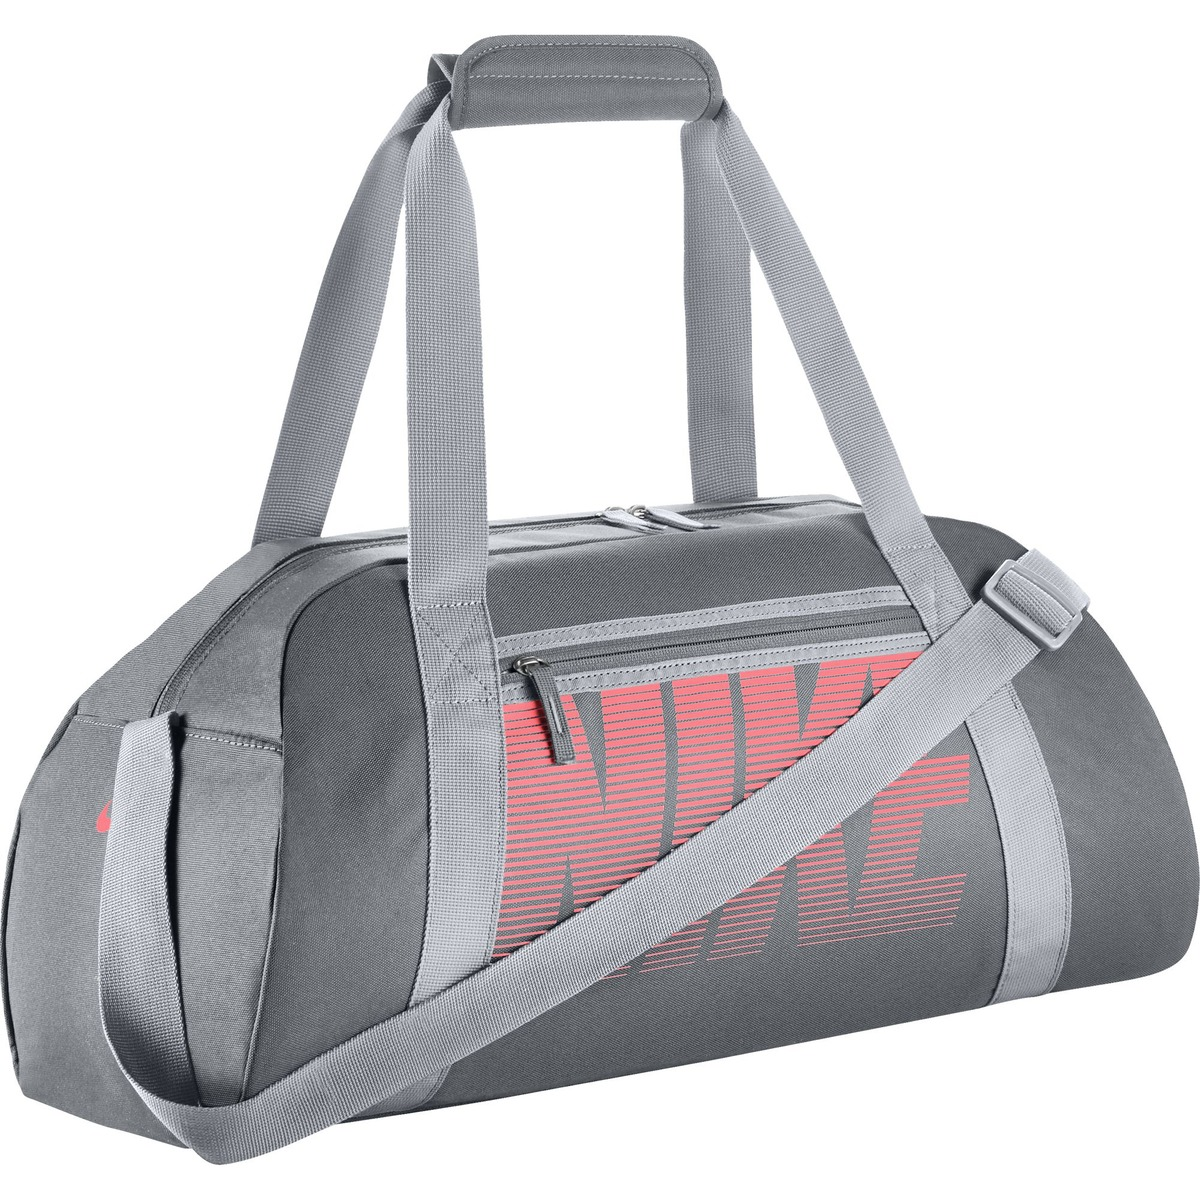 cbbfc456 Find club team duffel l bag g sport max. Shop every store on the internet  via PricePi.com